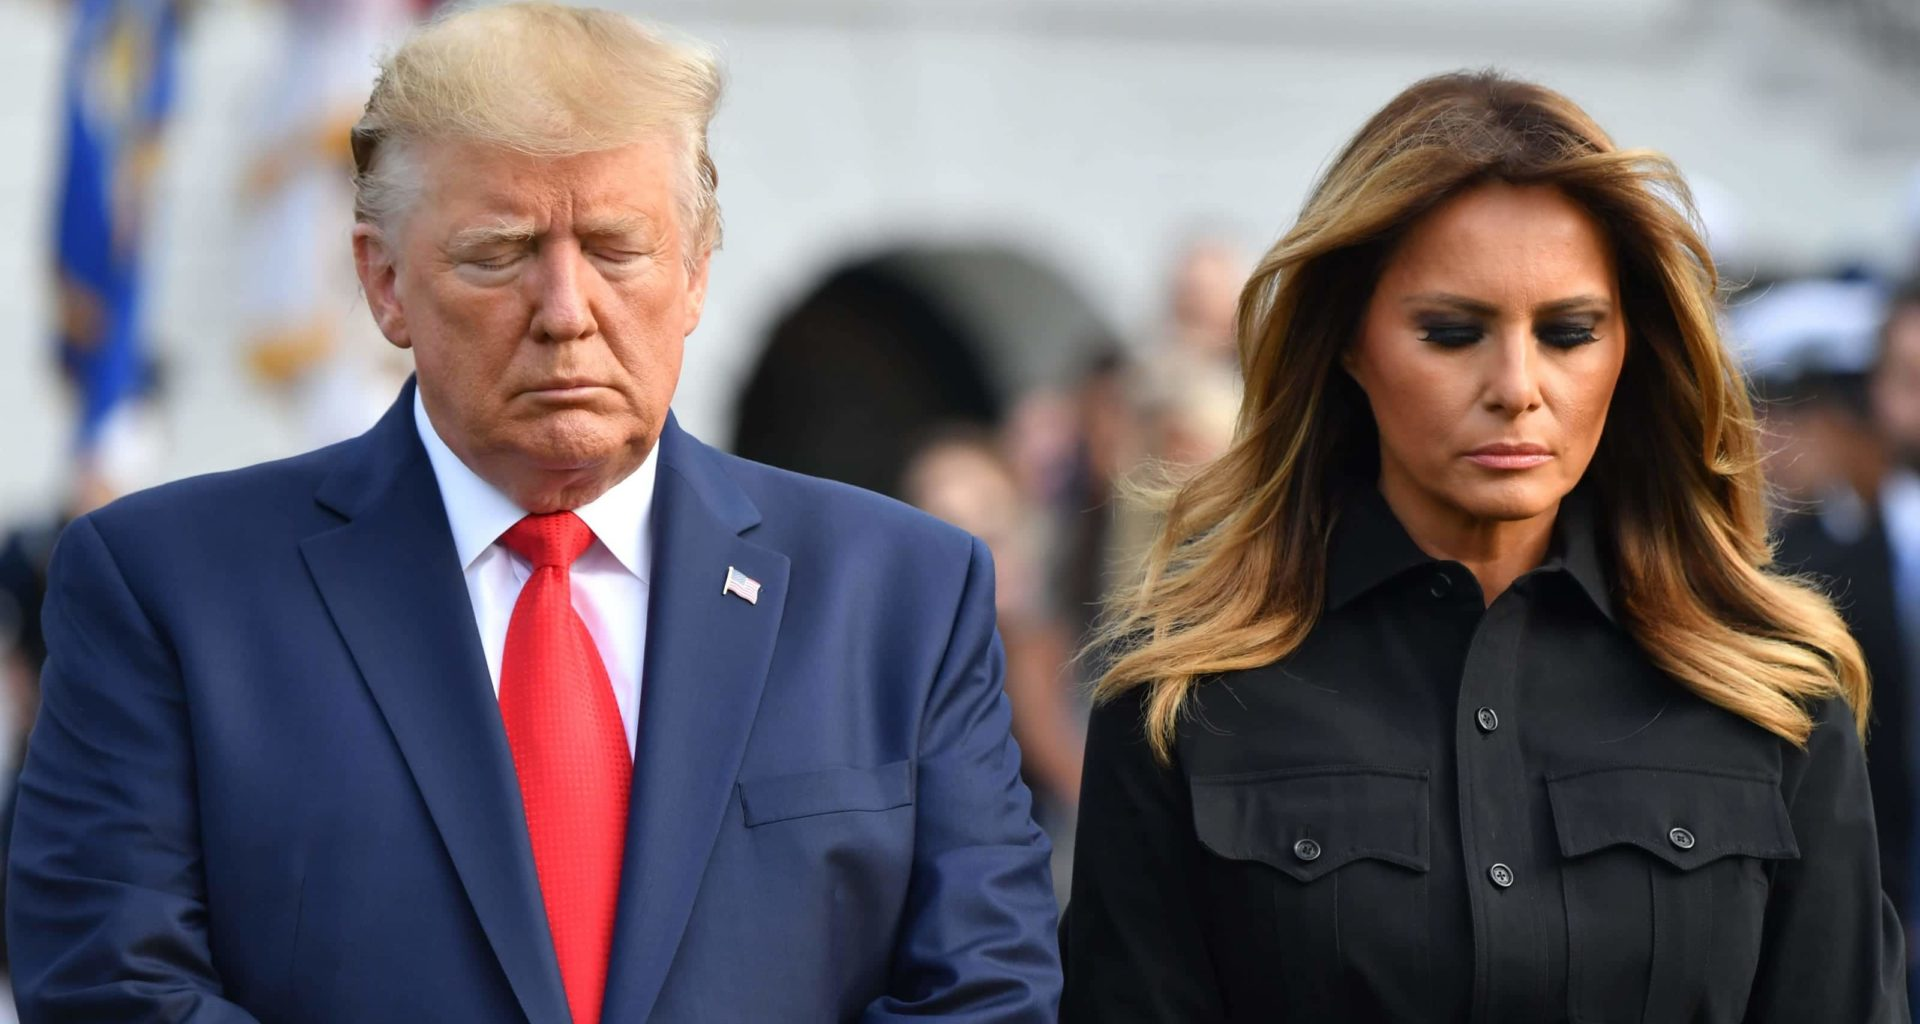 BREAKING Melania Trump Makes Harrowing Escape from Trump Tower, Sparks Nationwide Manhunt